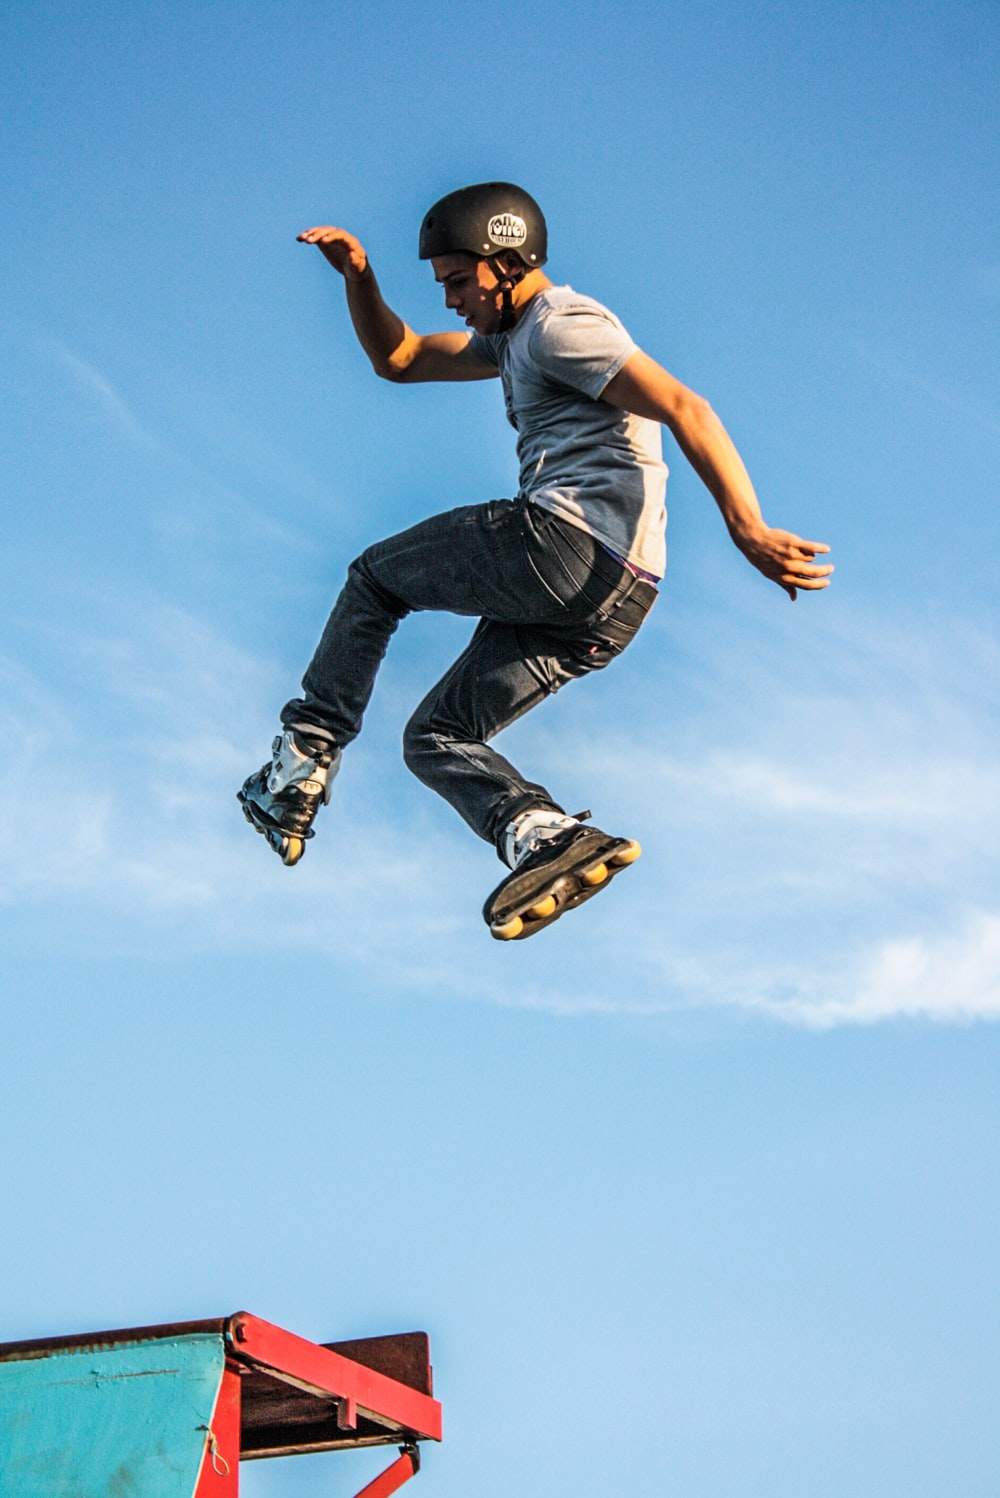 man in white t-shirt doing a roller skate trick in air